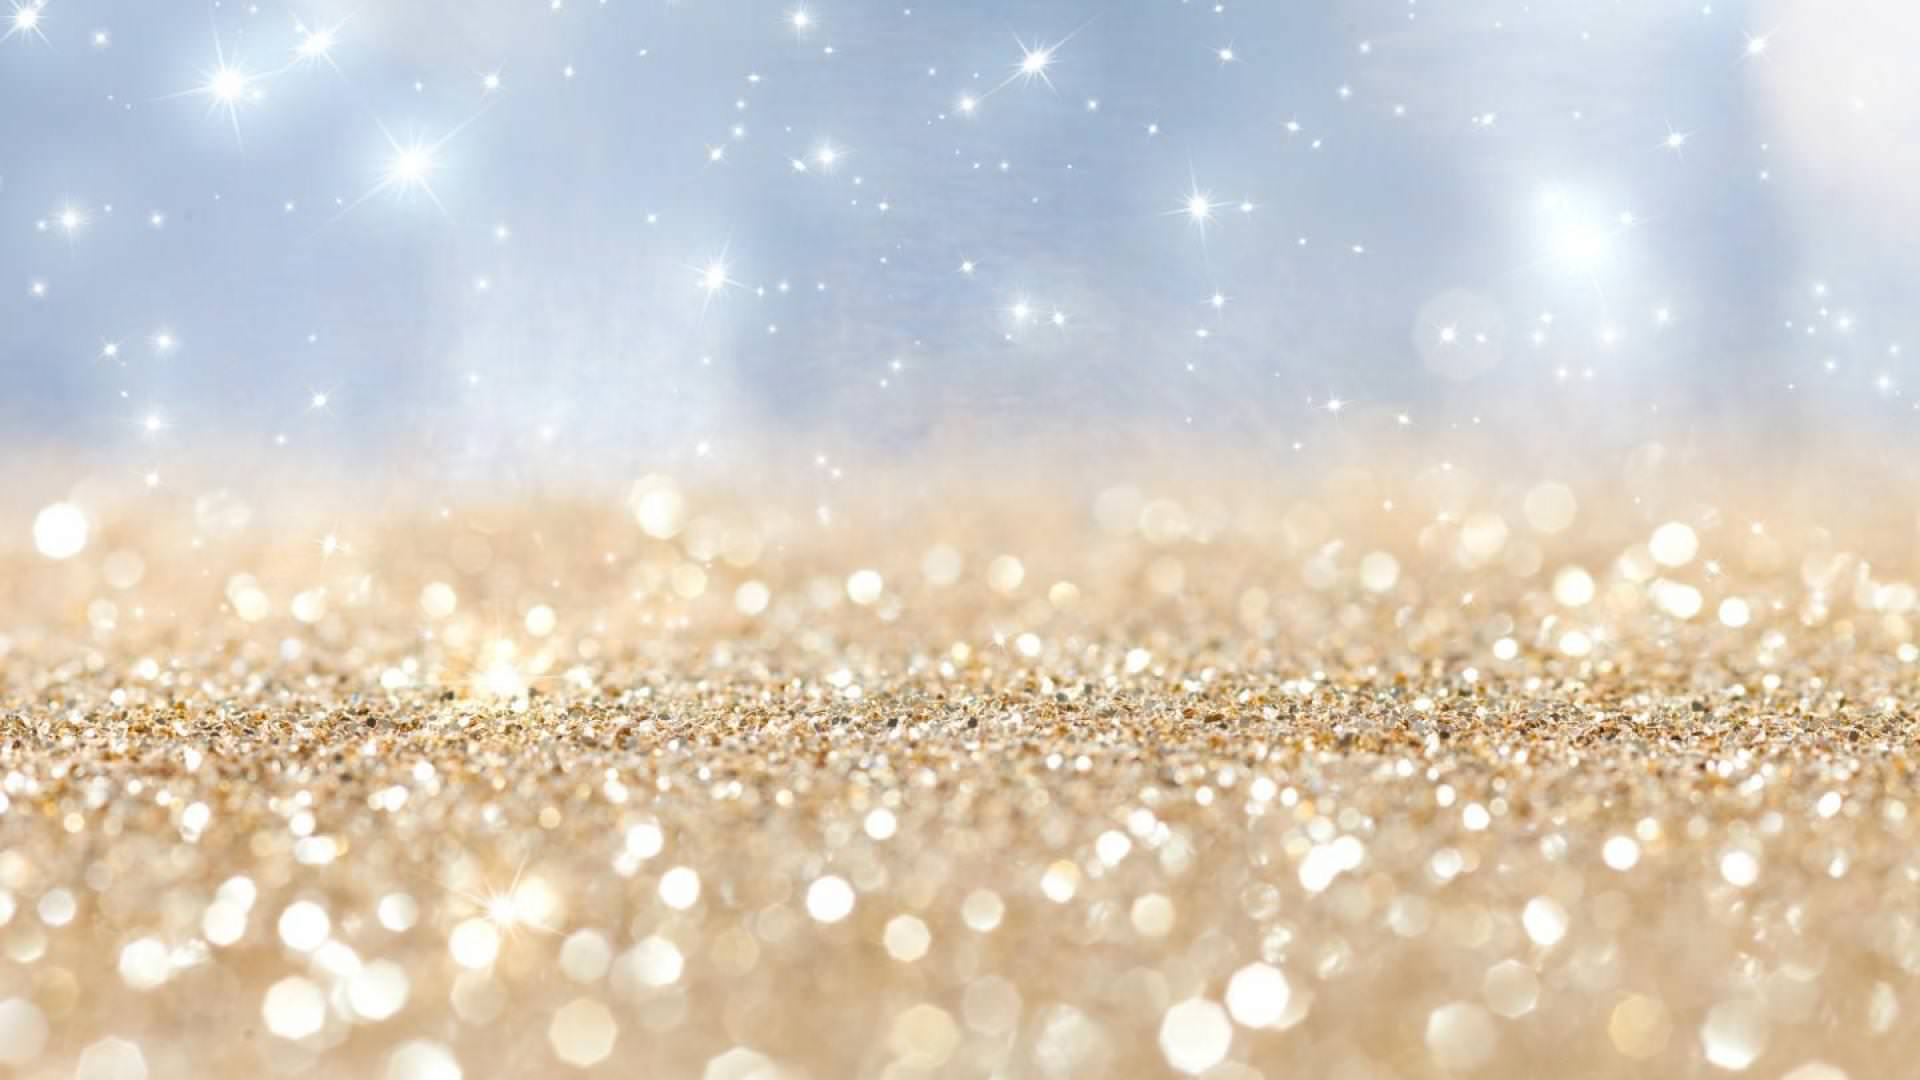 Background Pastel Tosca 15+ White Glitter Backgrounds | Wallpapers | Freecreatives